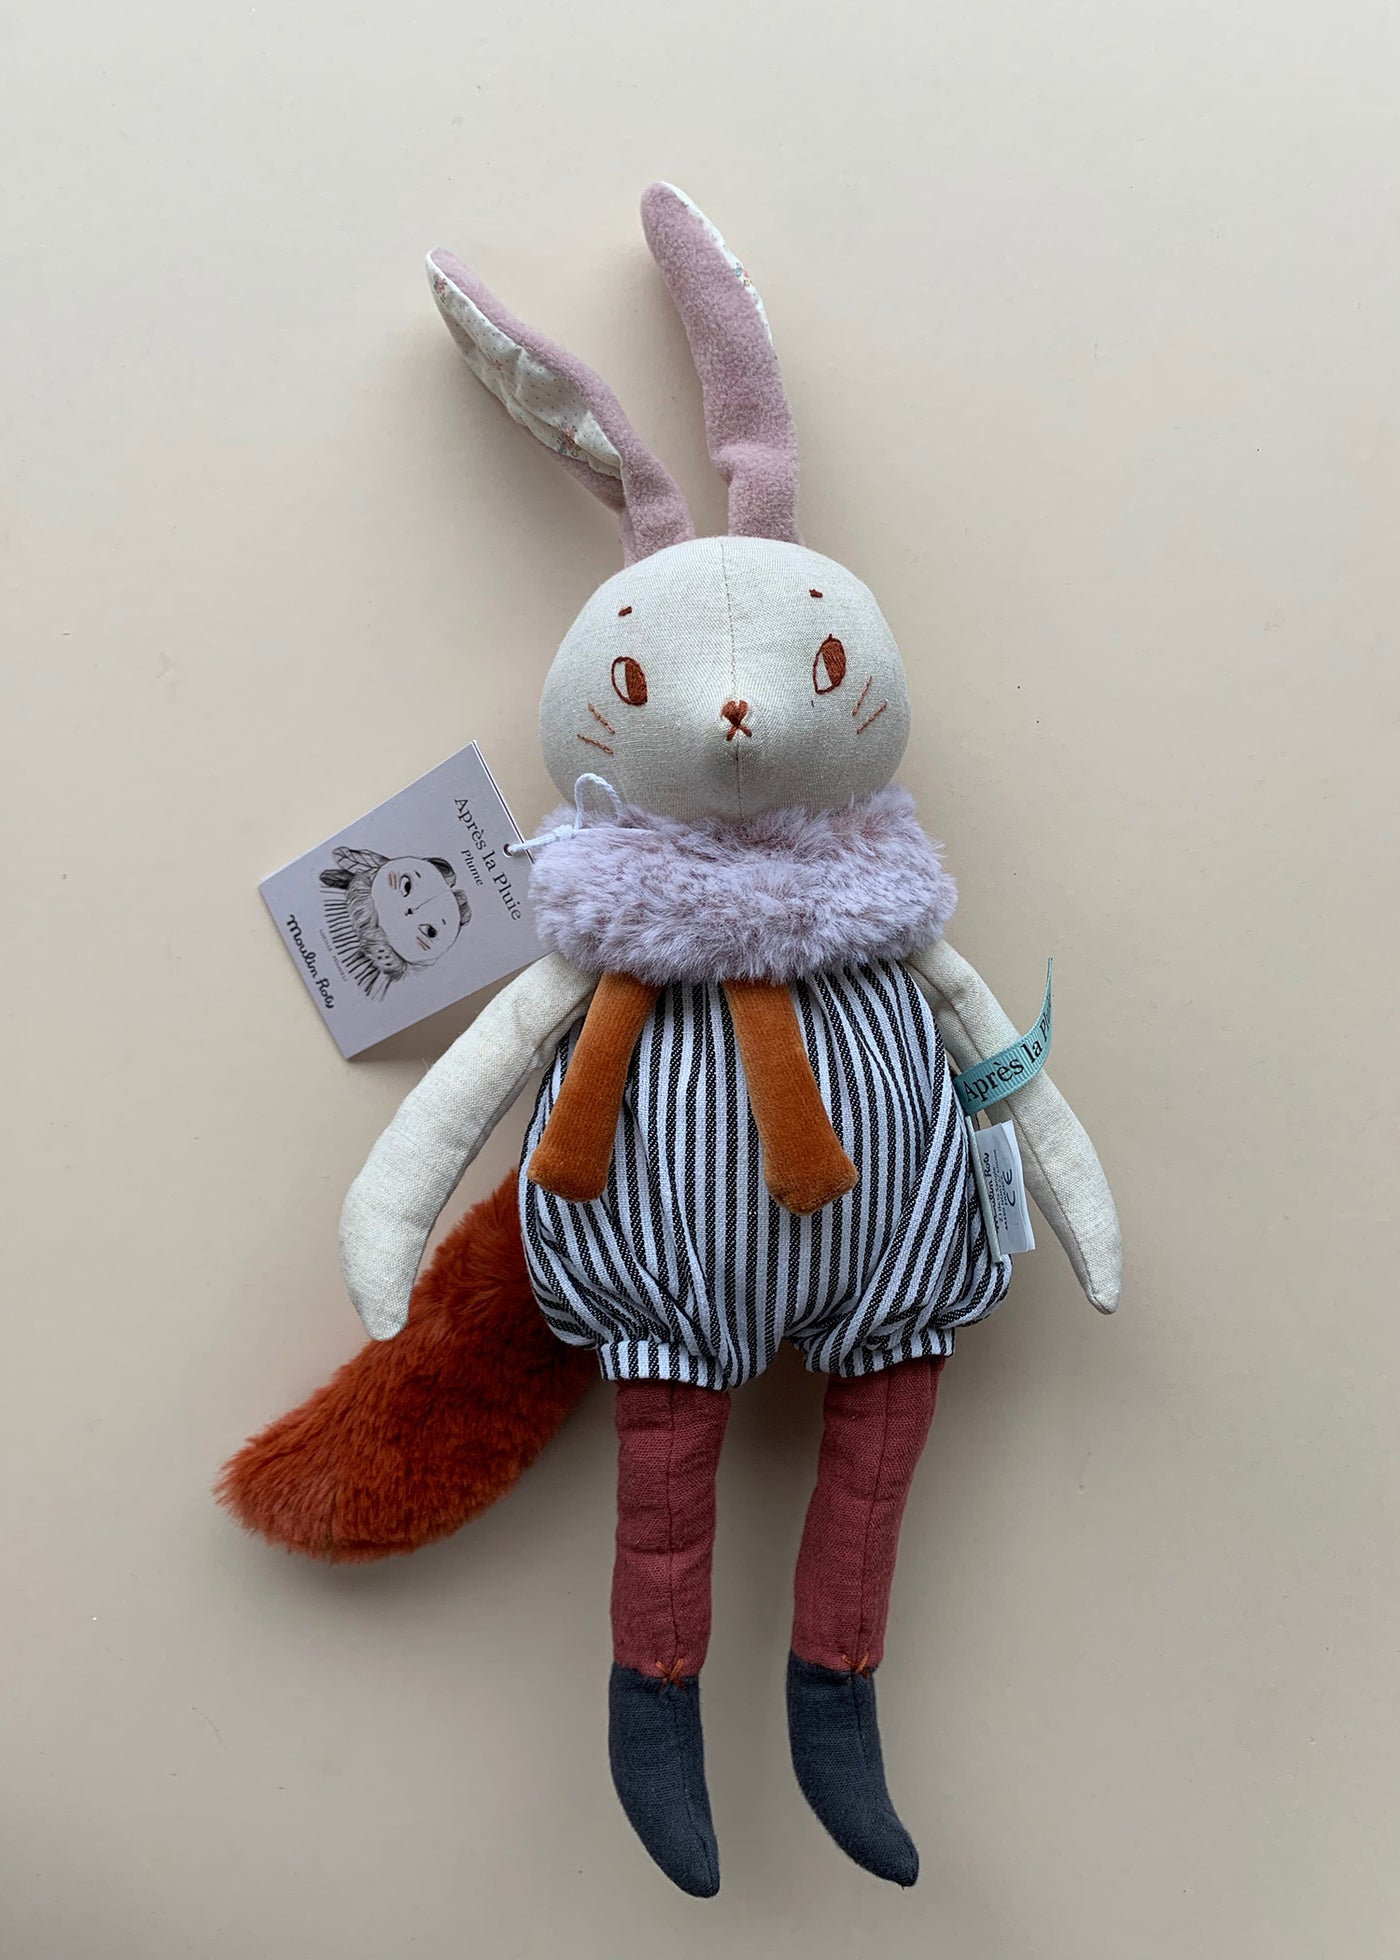 Moulin Roty Plume the Rabbit